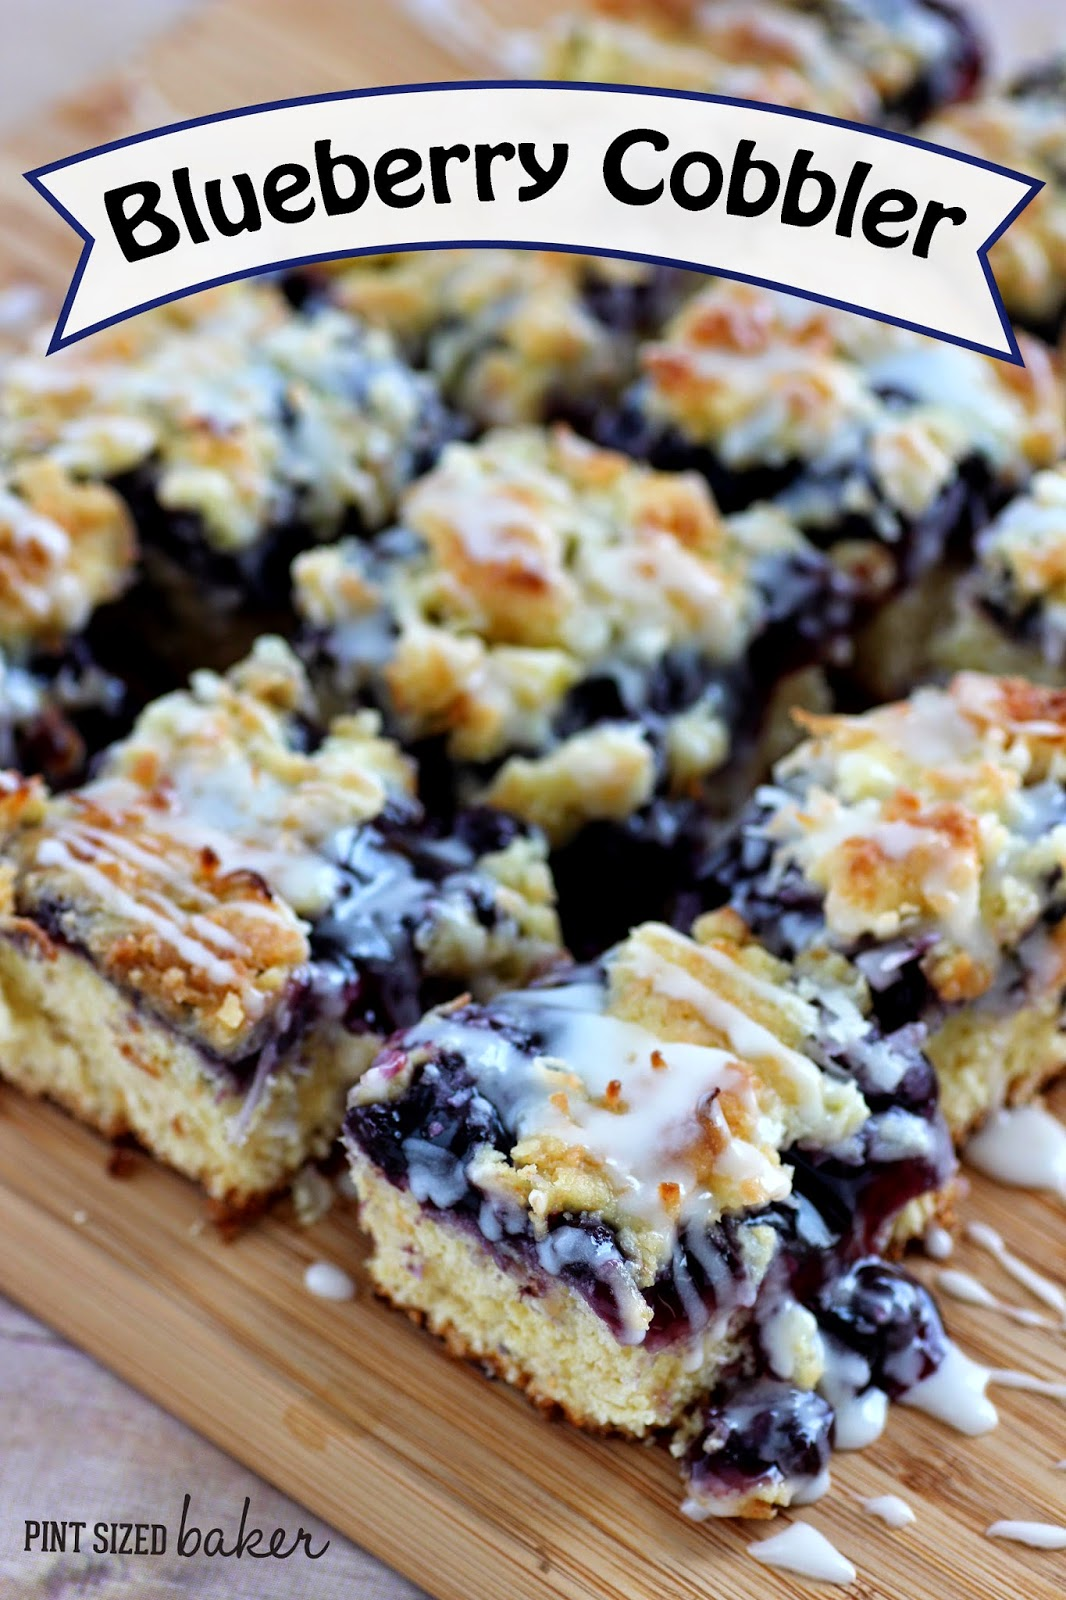 Easy Blueberry Cobber for a #LuckyLeafSummer. from @pintsizedbaker